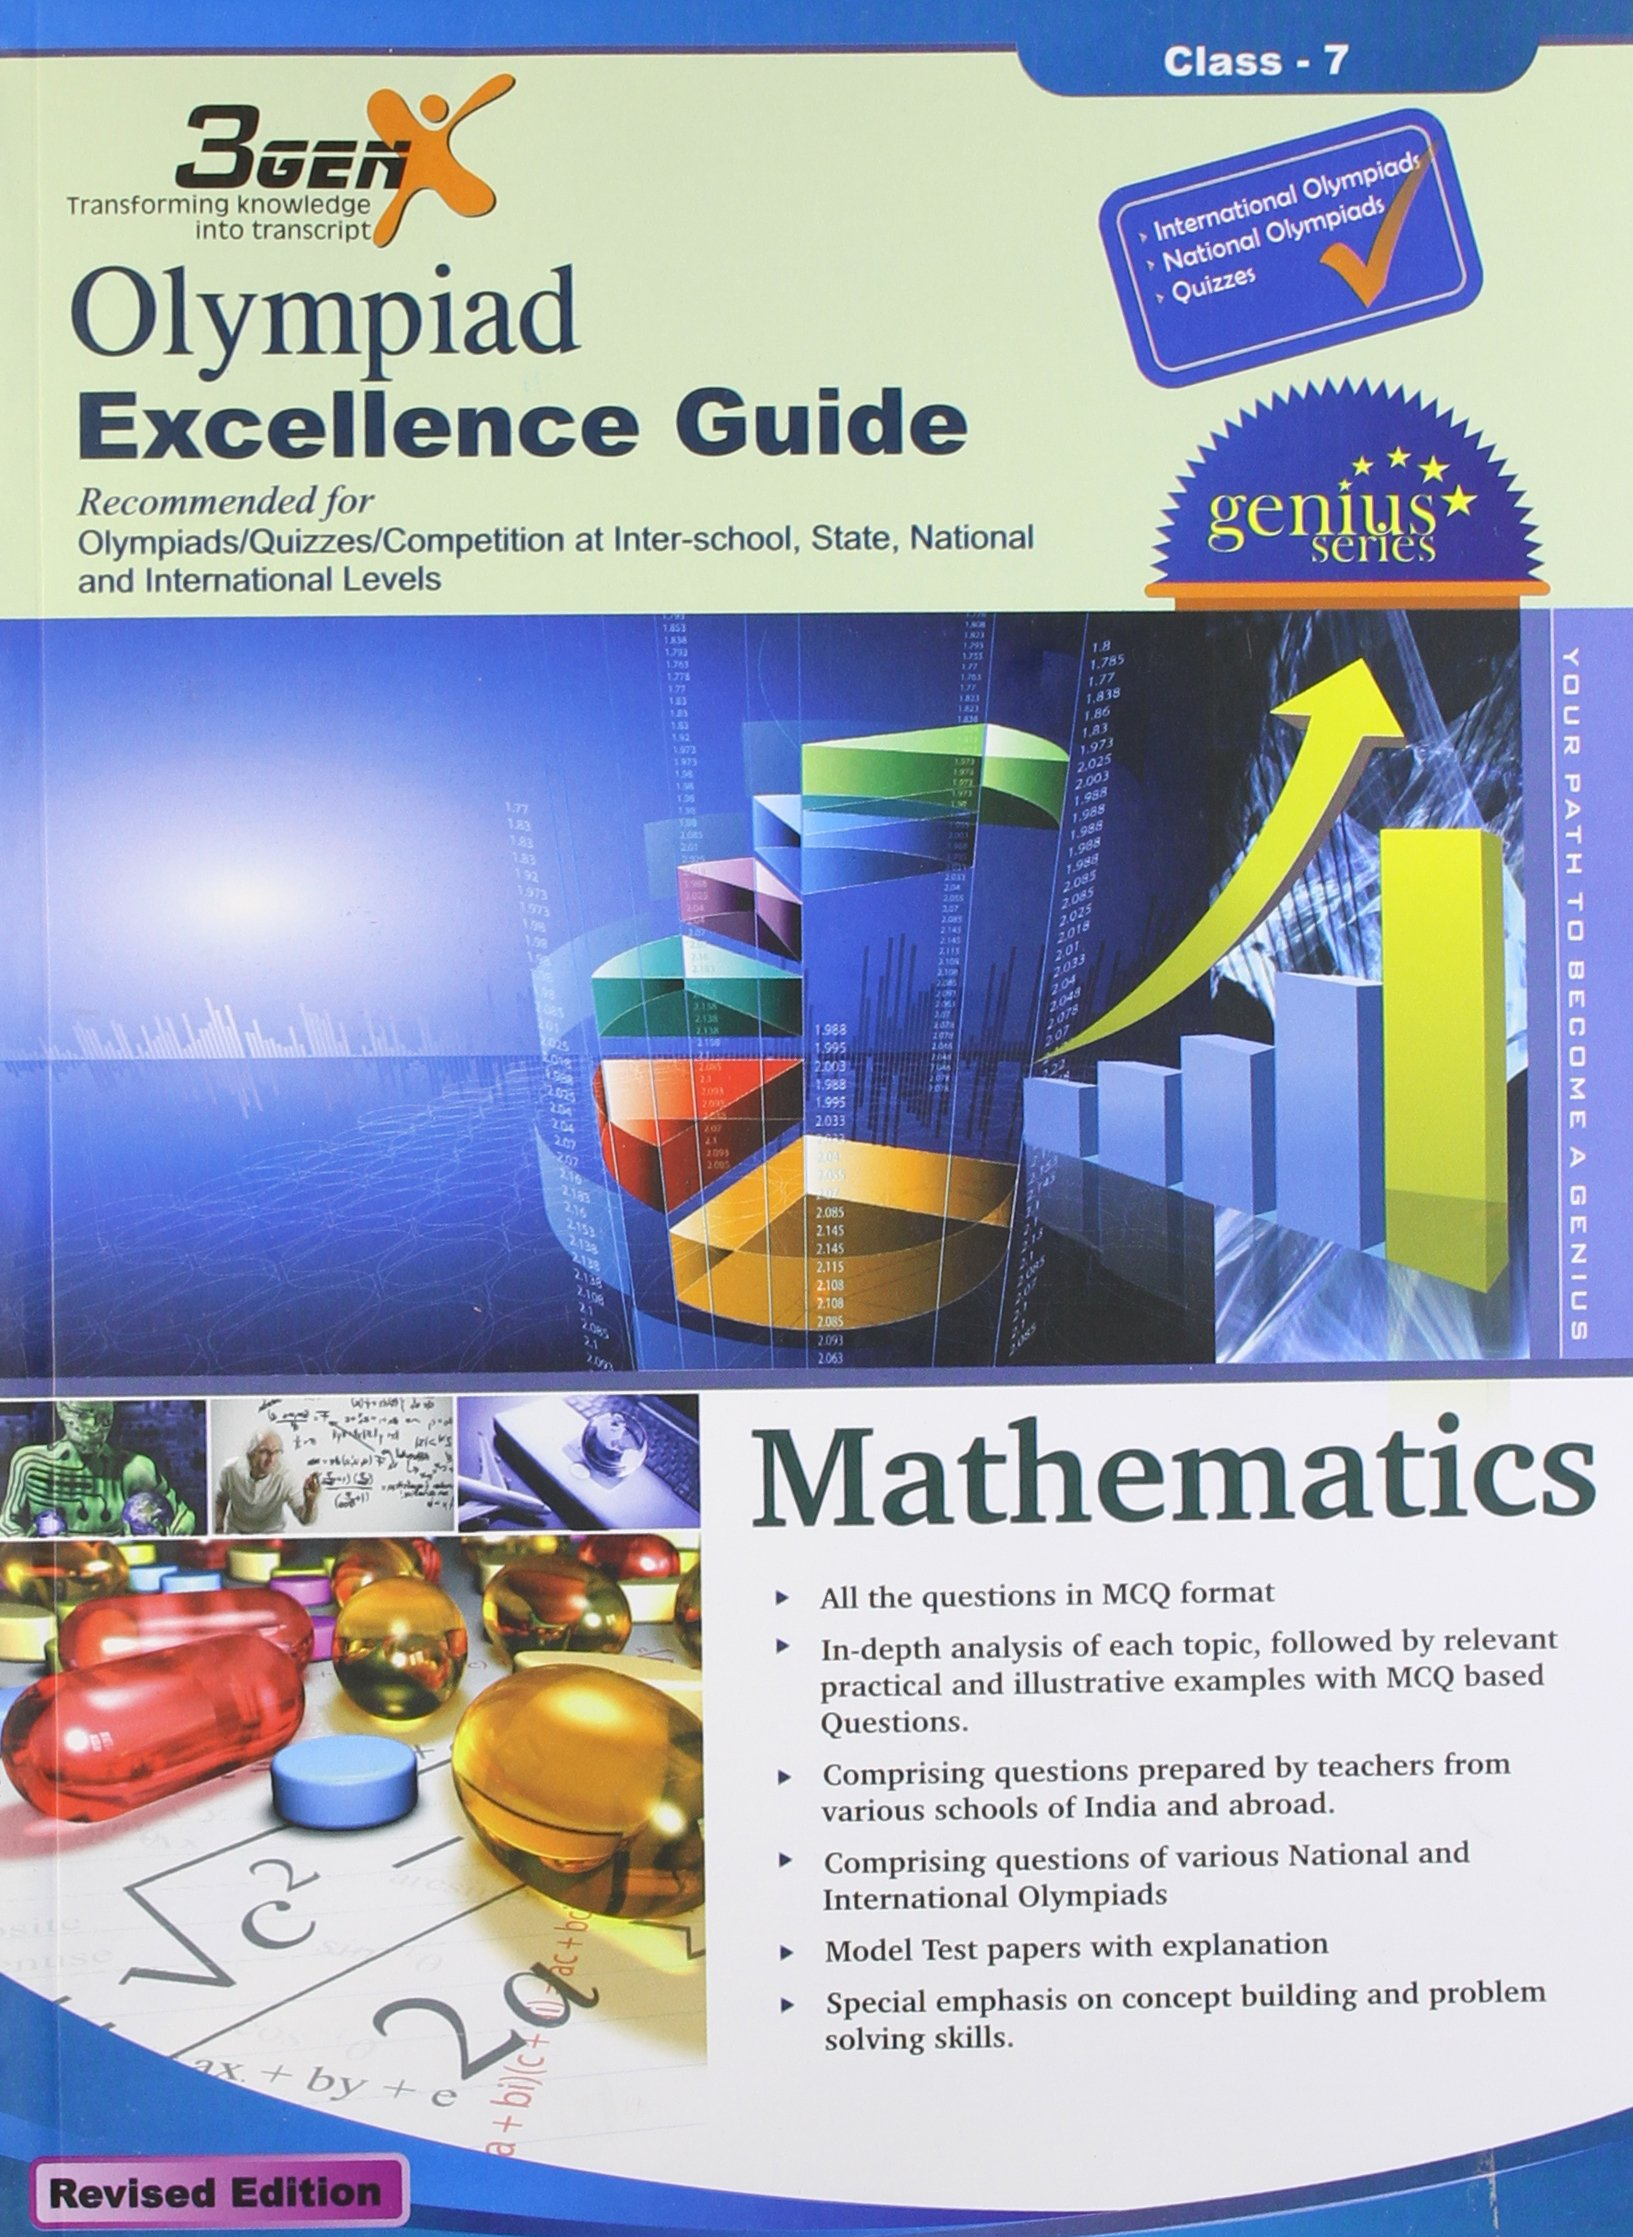 Amazon.in: Buy Olympiad Excellence Guide for Mathematics (Class-7) Book  Online at Low Prices in India | Olympiad Excellence Guide for Mathematics ( Class-7) ...